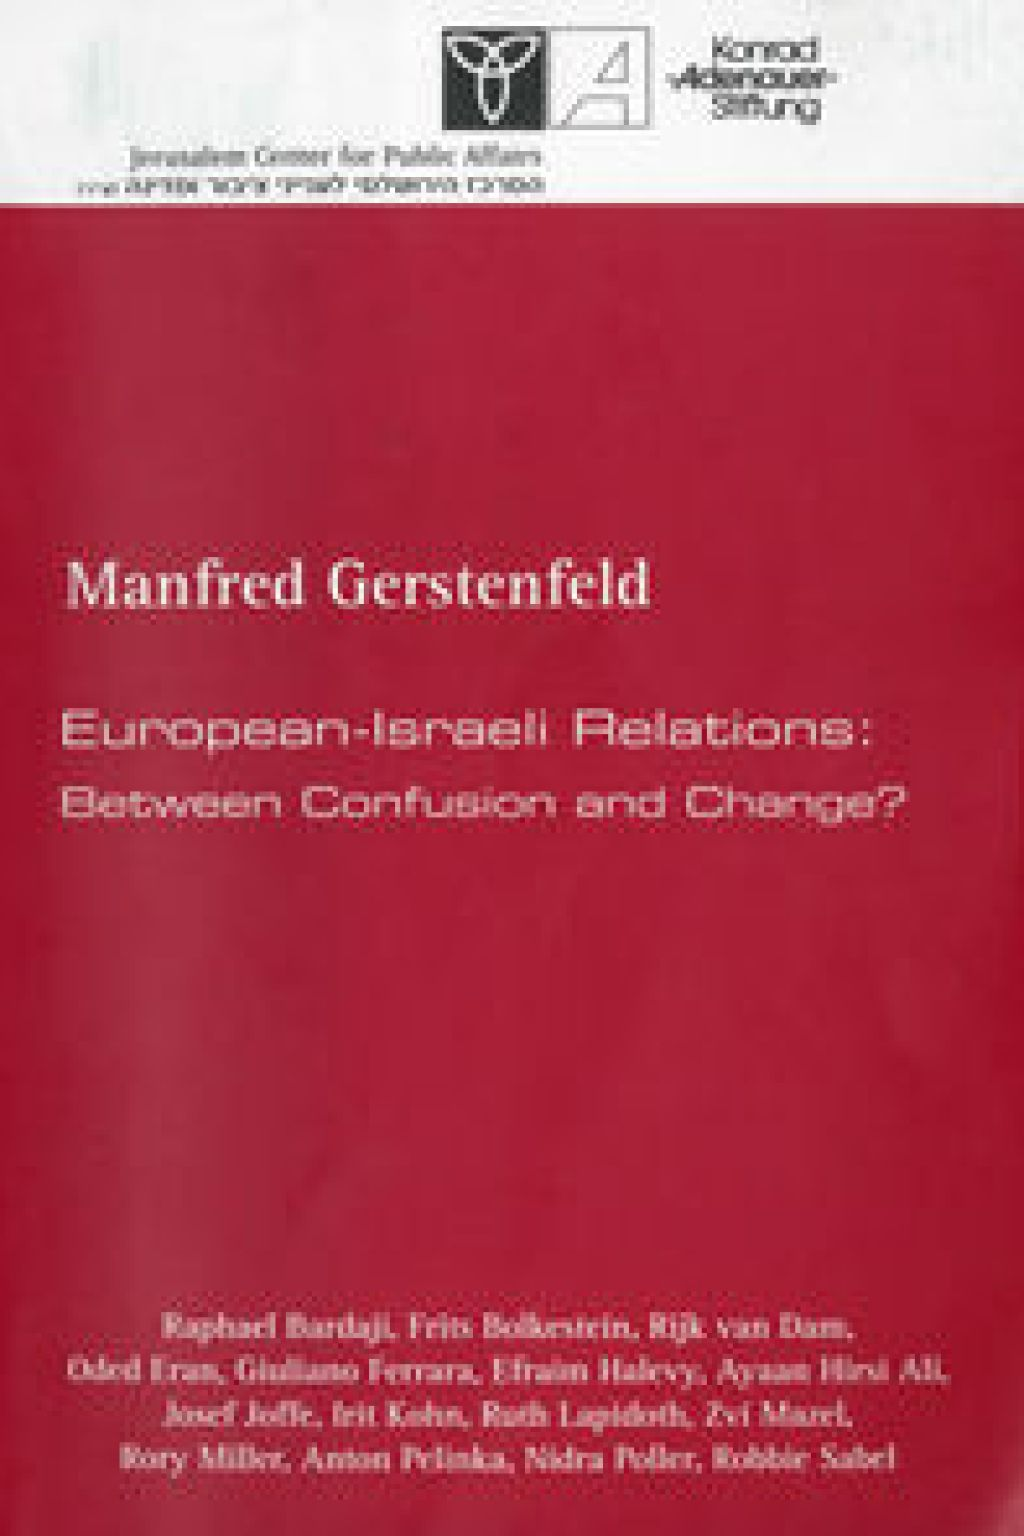 European-Israeli Relations: Between Confusion and Change